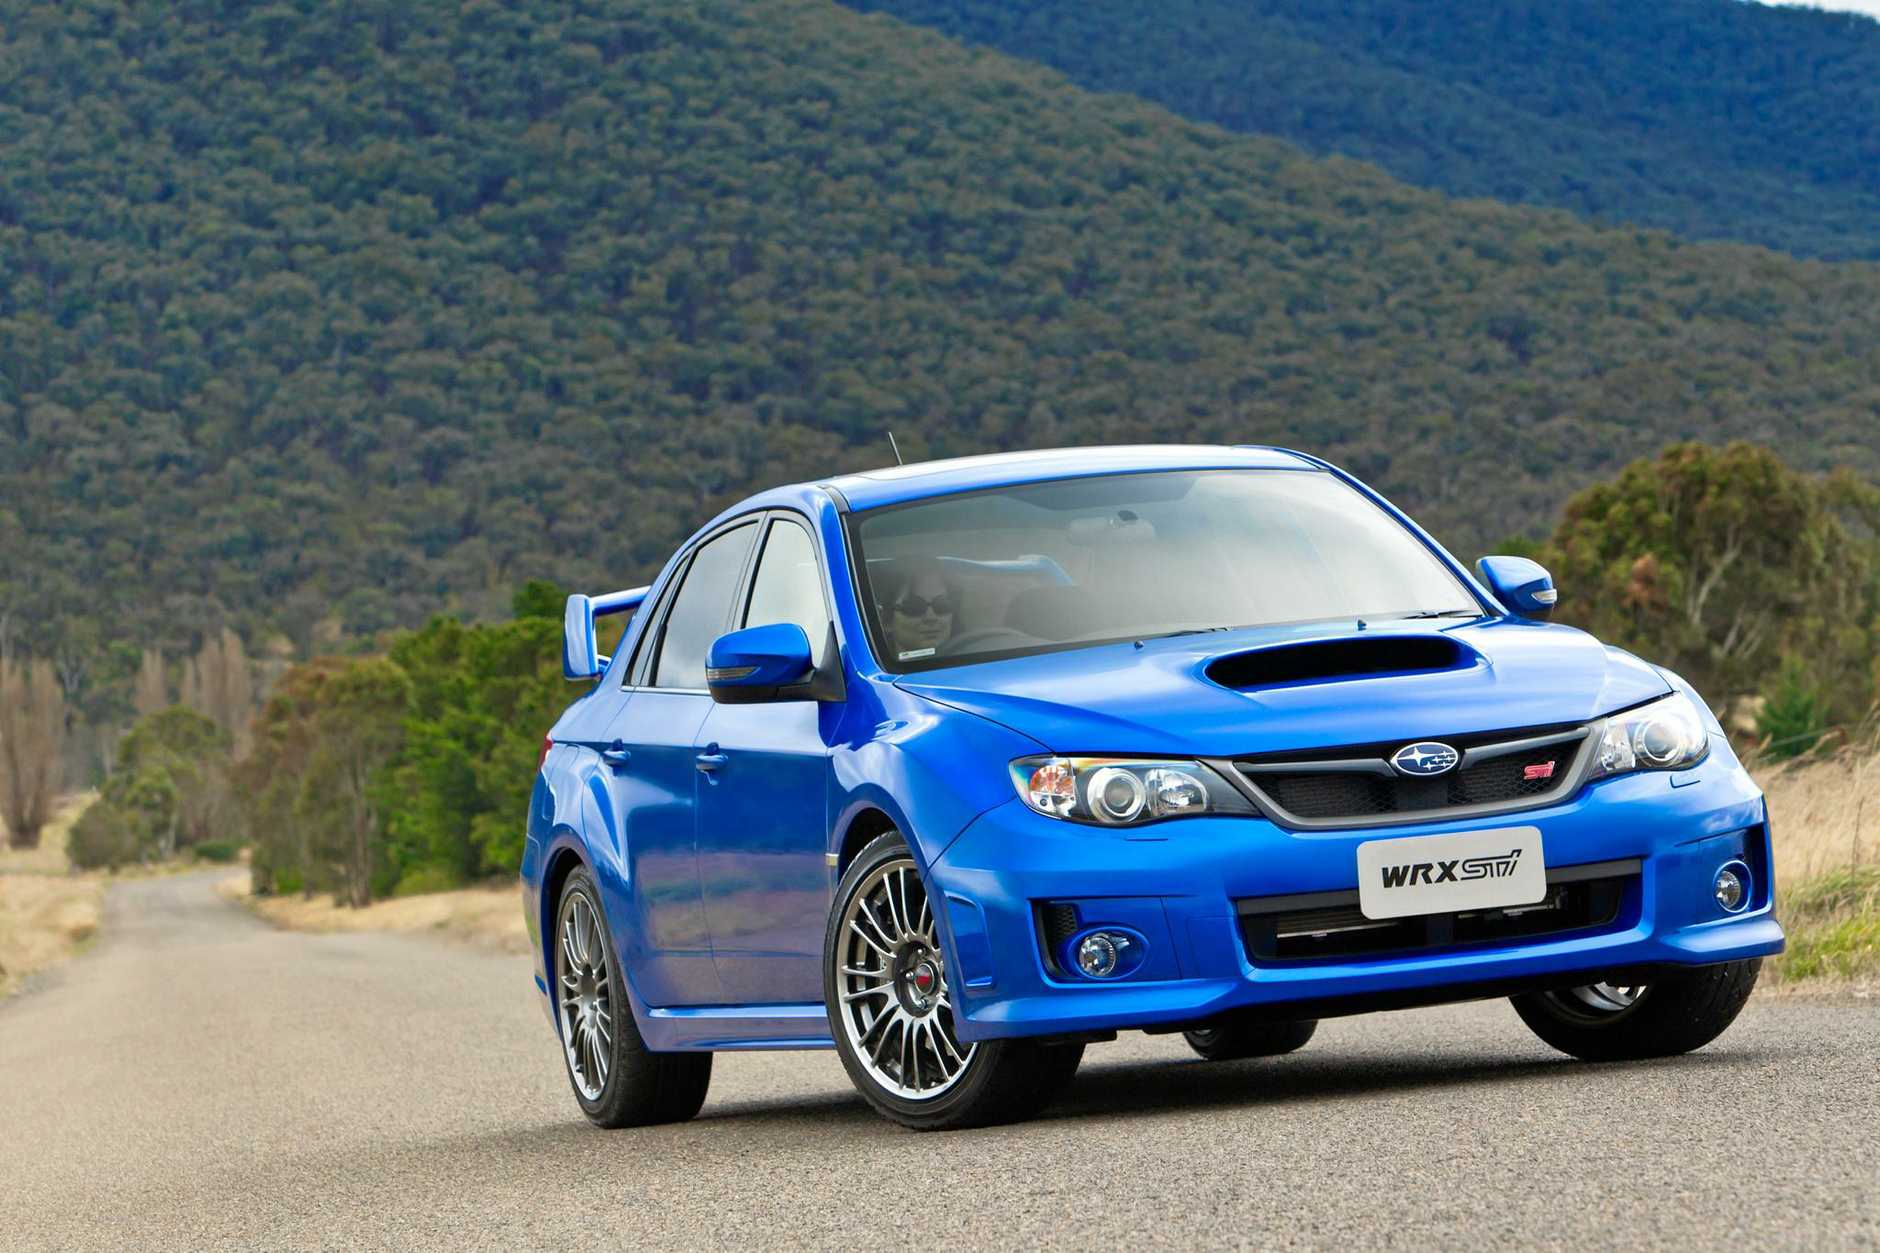 Fire risk': Subaru to recall more than 22,000 cars | Observer